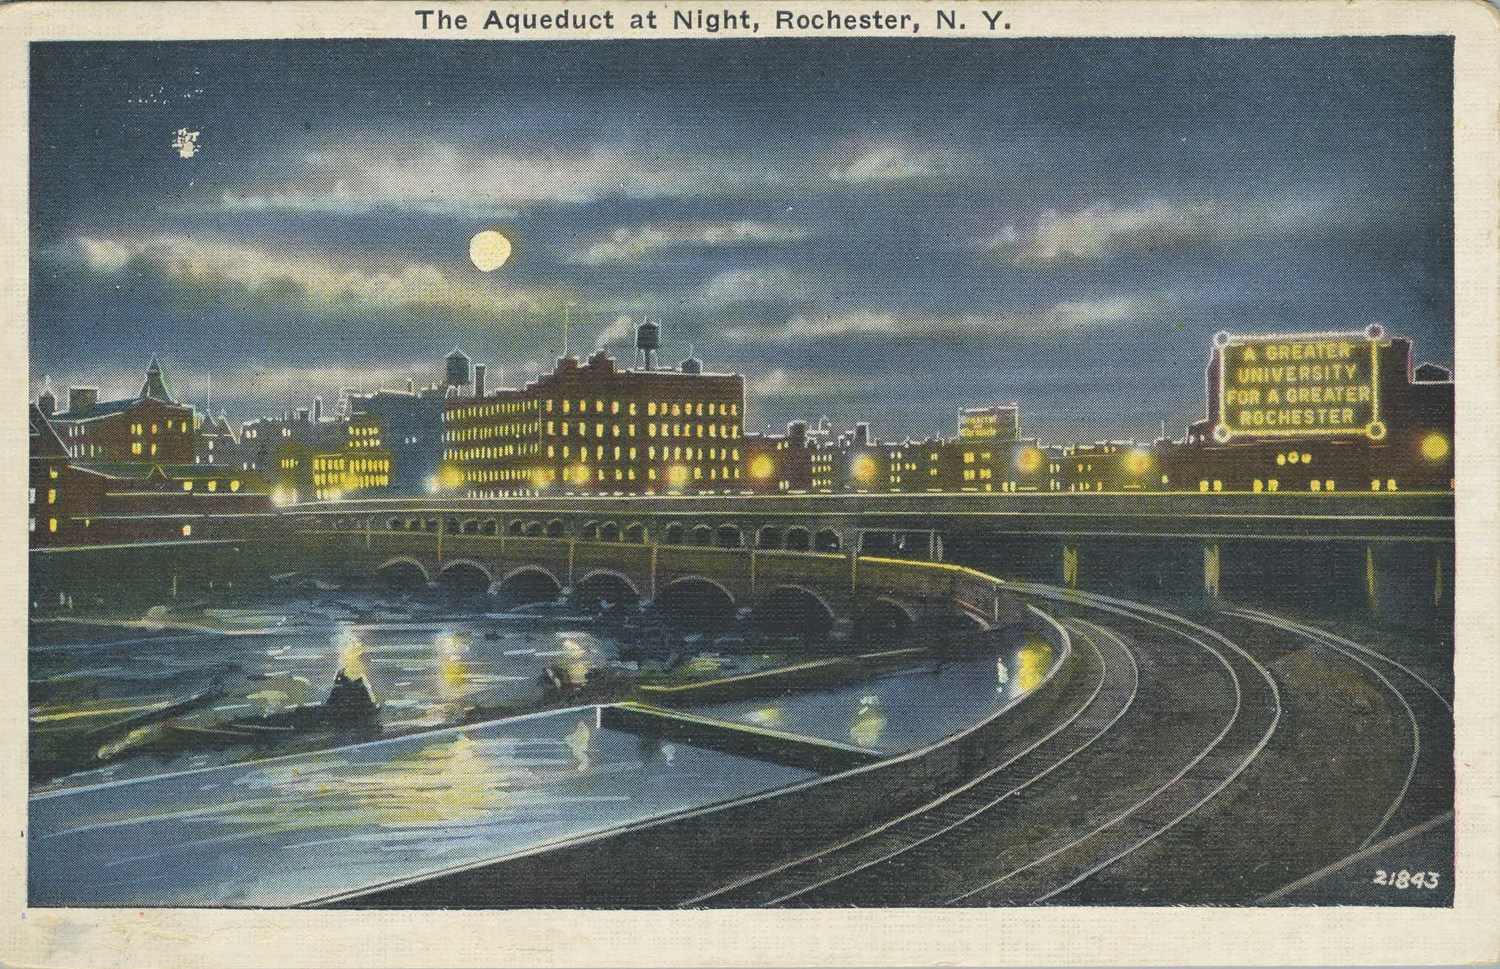 The Aqueduct at Night, Rochester, N.Y.